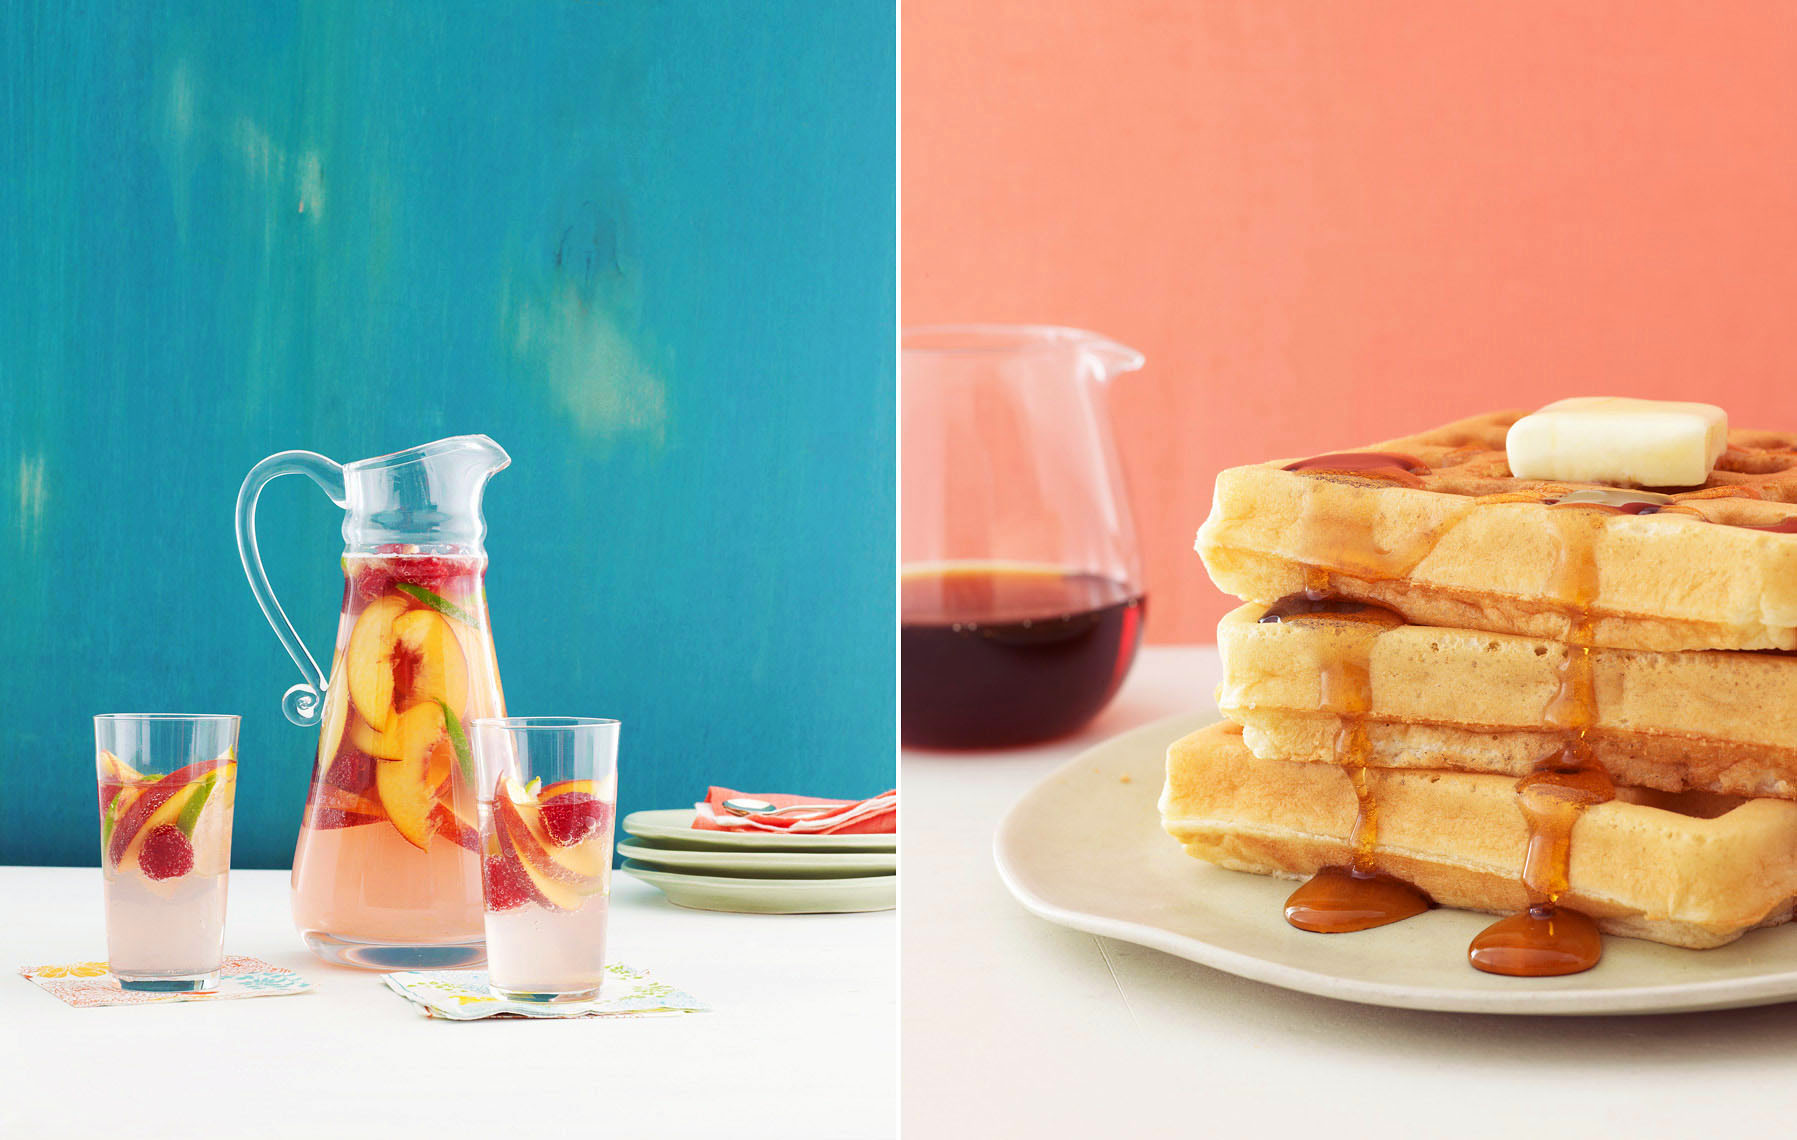 LEMONADE-AND-WAFFLES